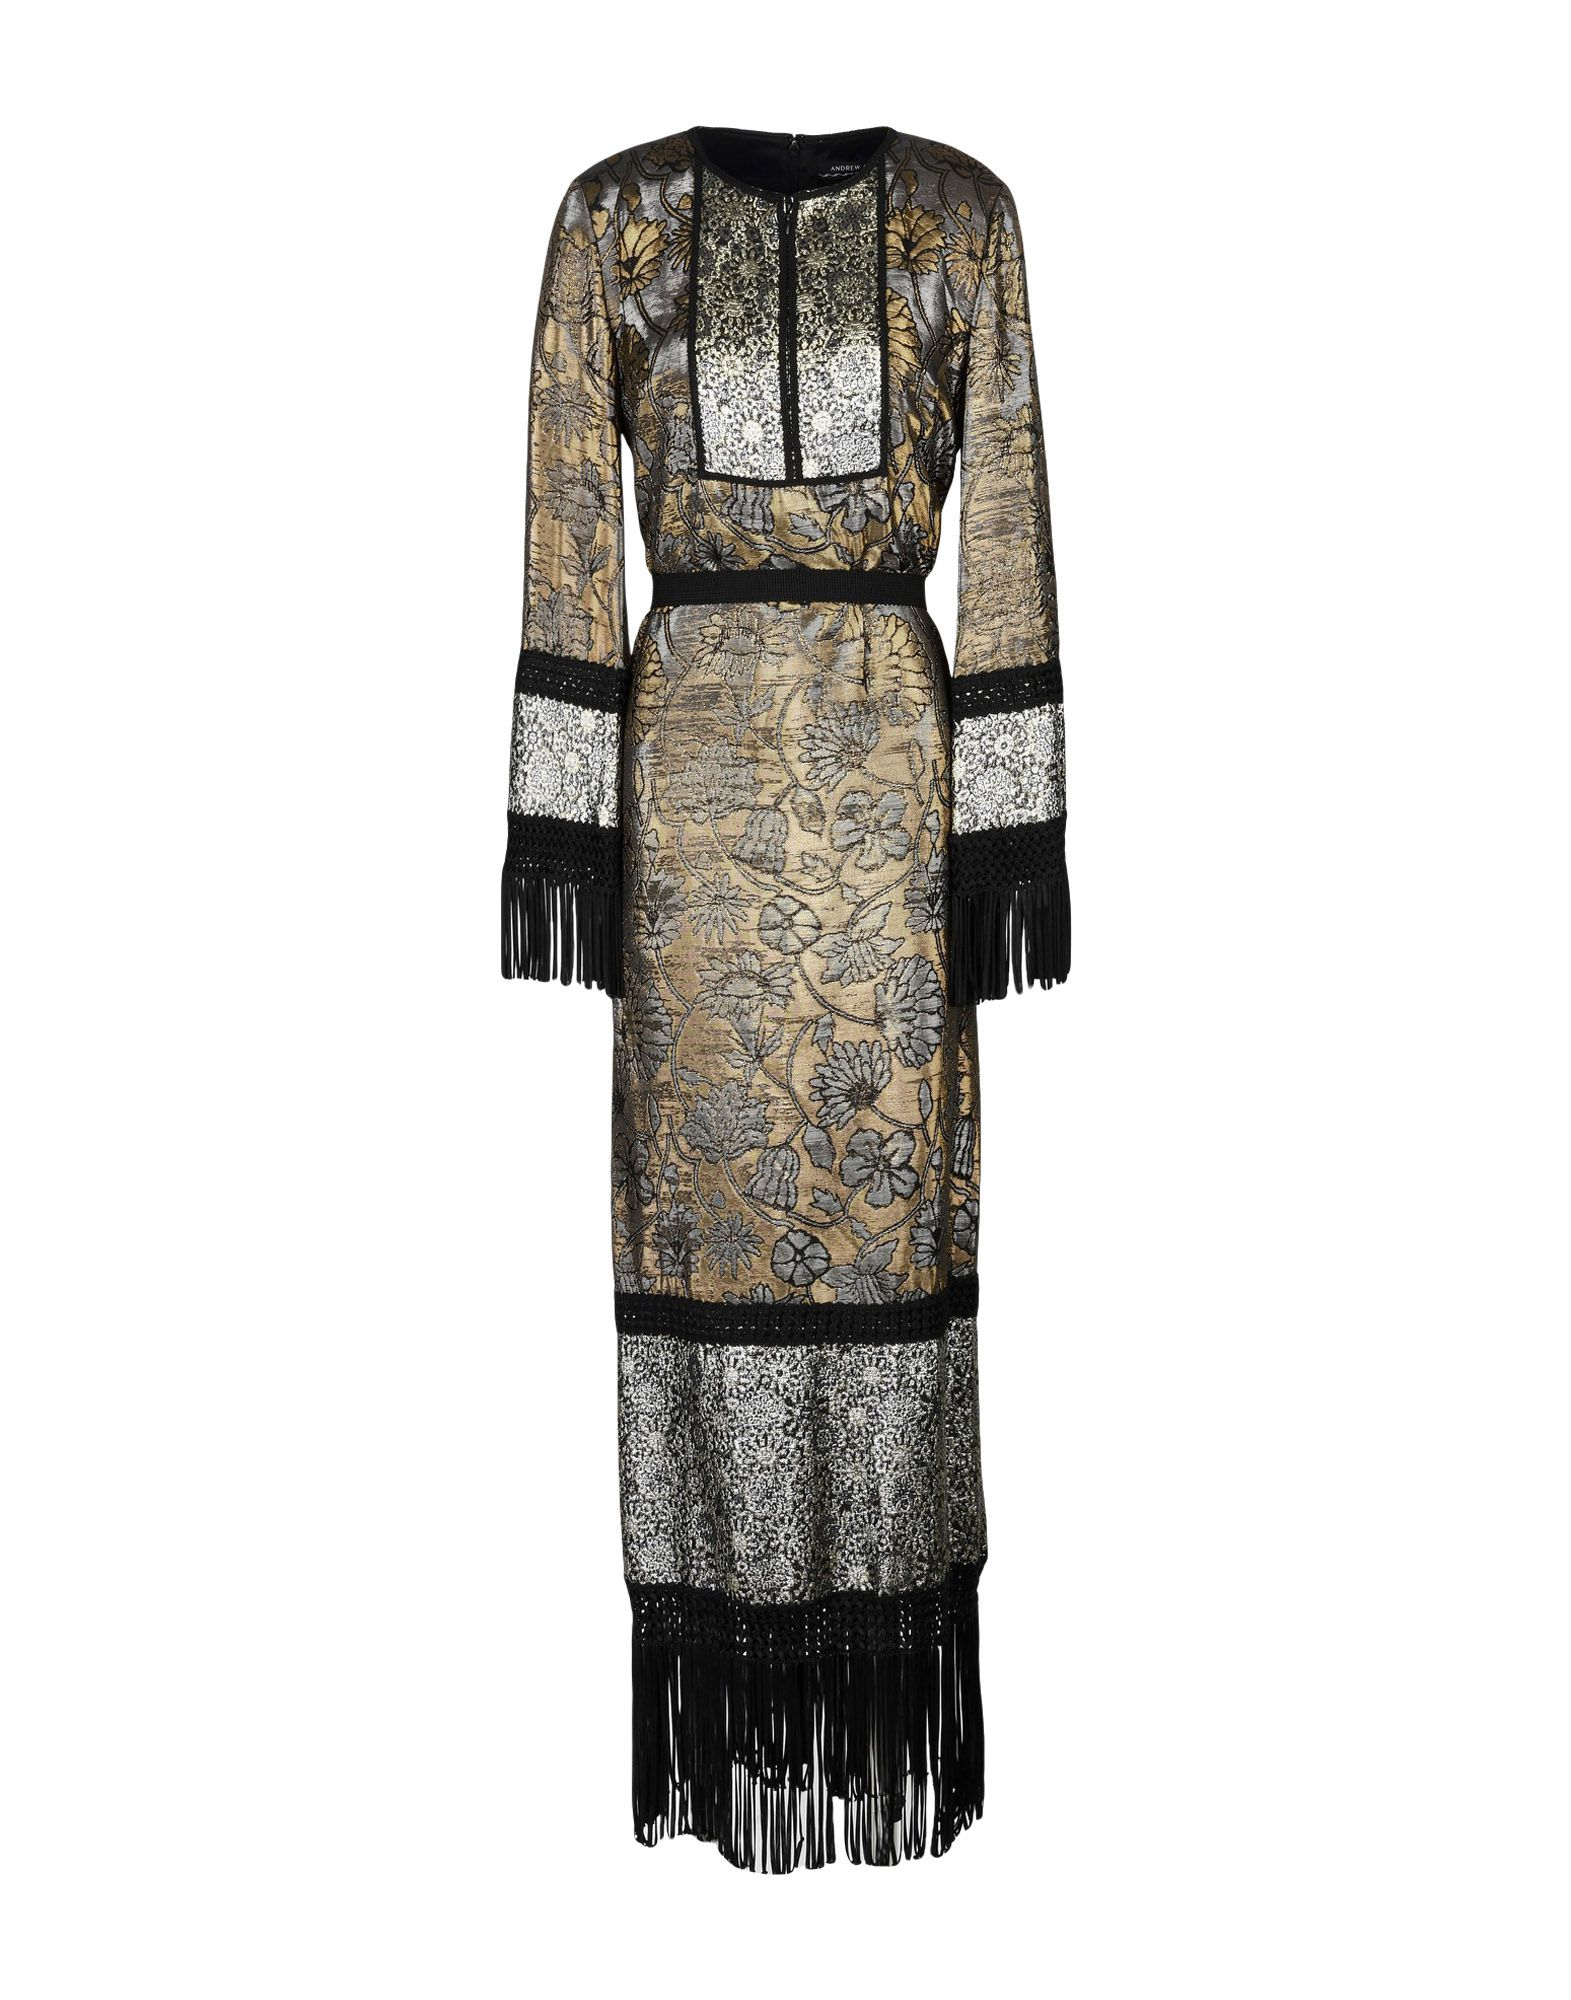 ANDREW GN Long Dress in Gold